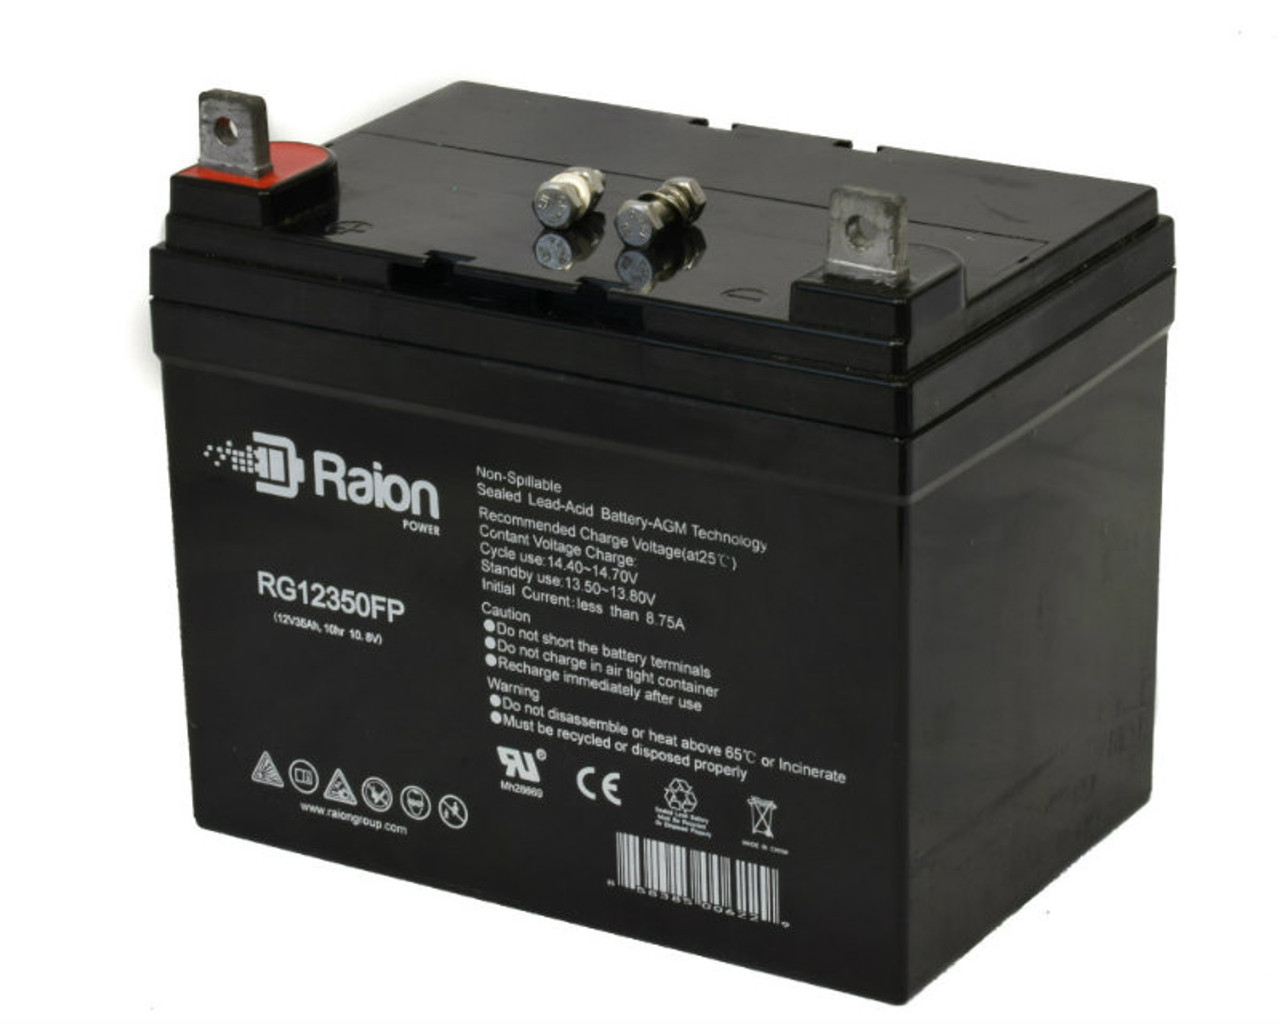 RG12350FP Sealed Lead Acid Battery Pack For Quickie Targa 14 Inch U1 AGM Mobility Scooter